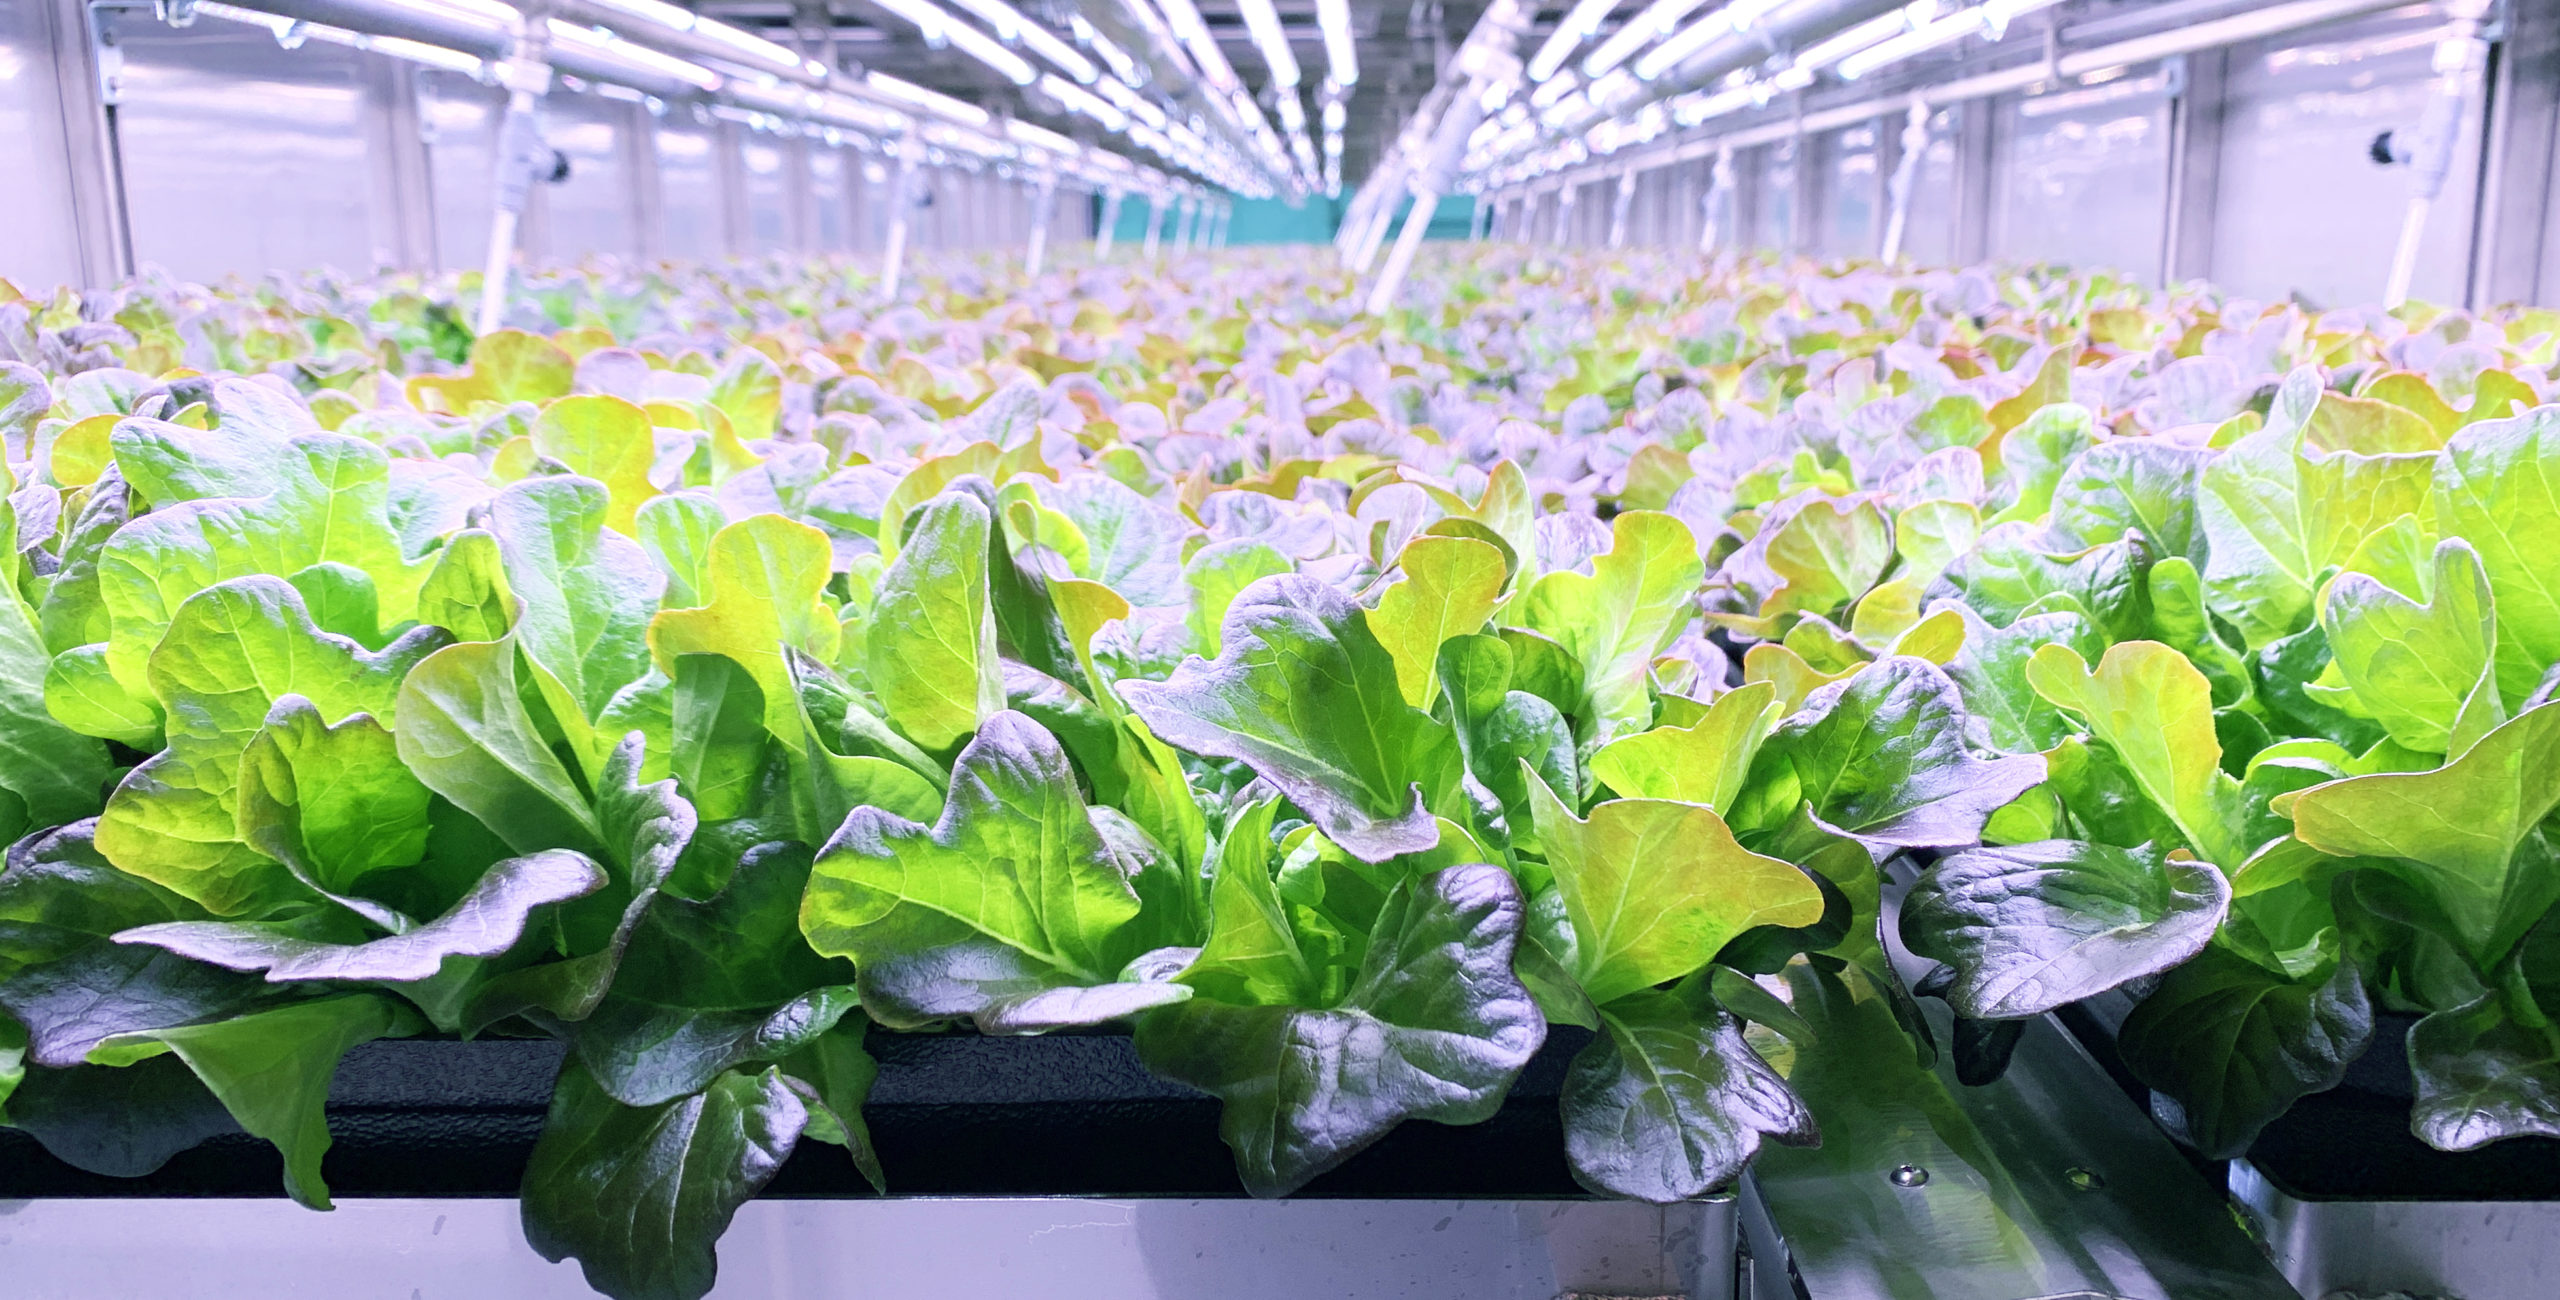 80 Acres Farms Leafy Greens in Indoor Farm